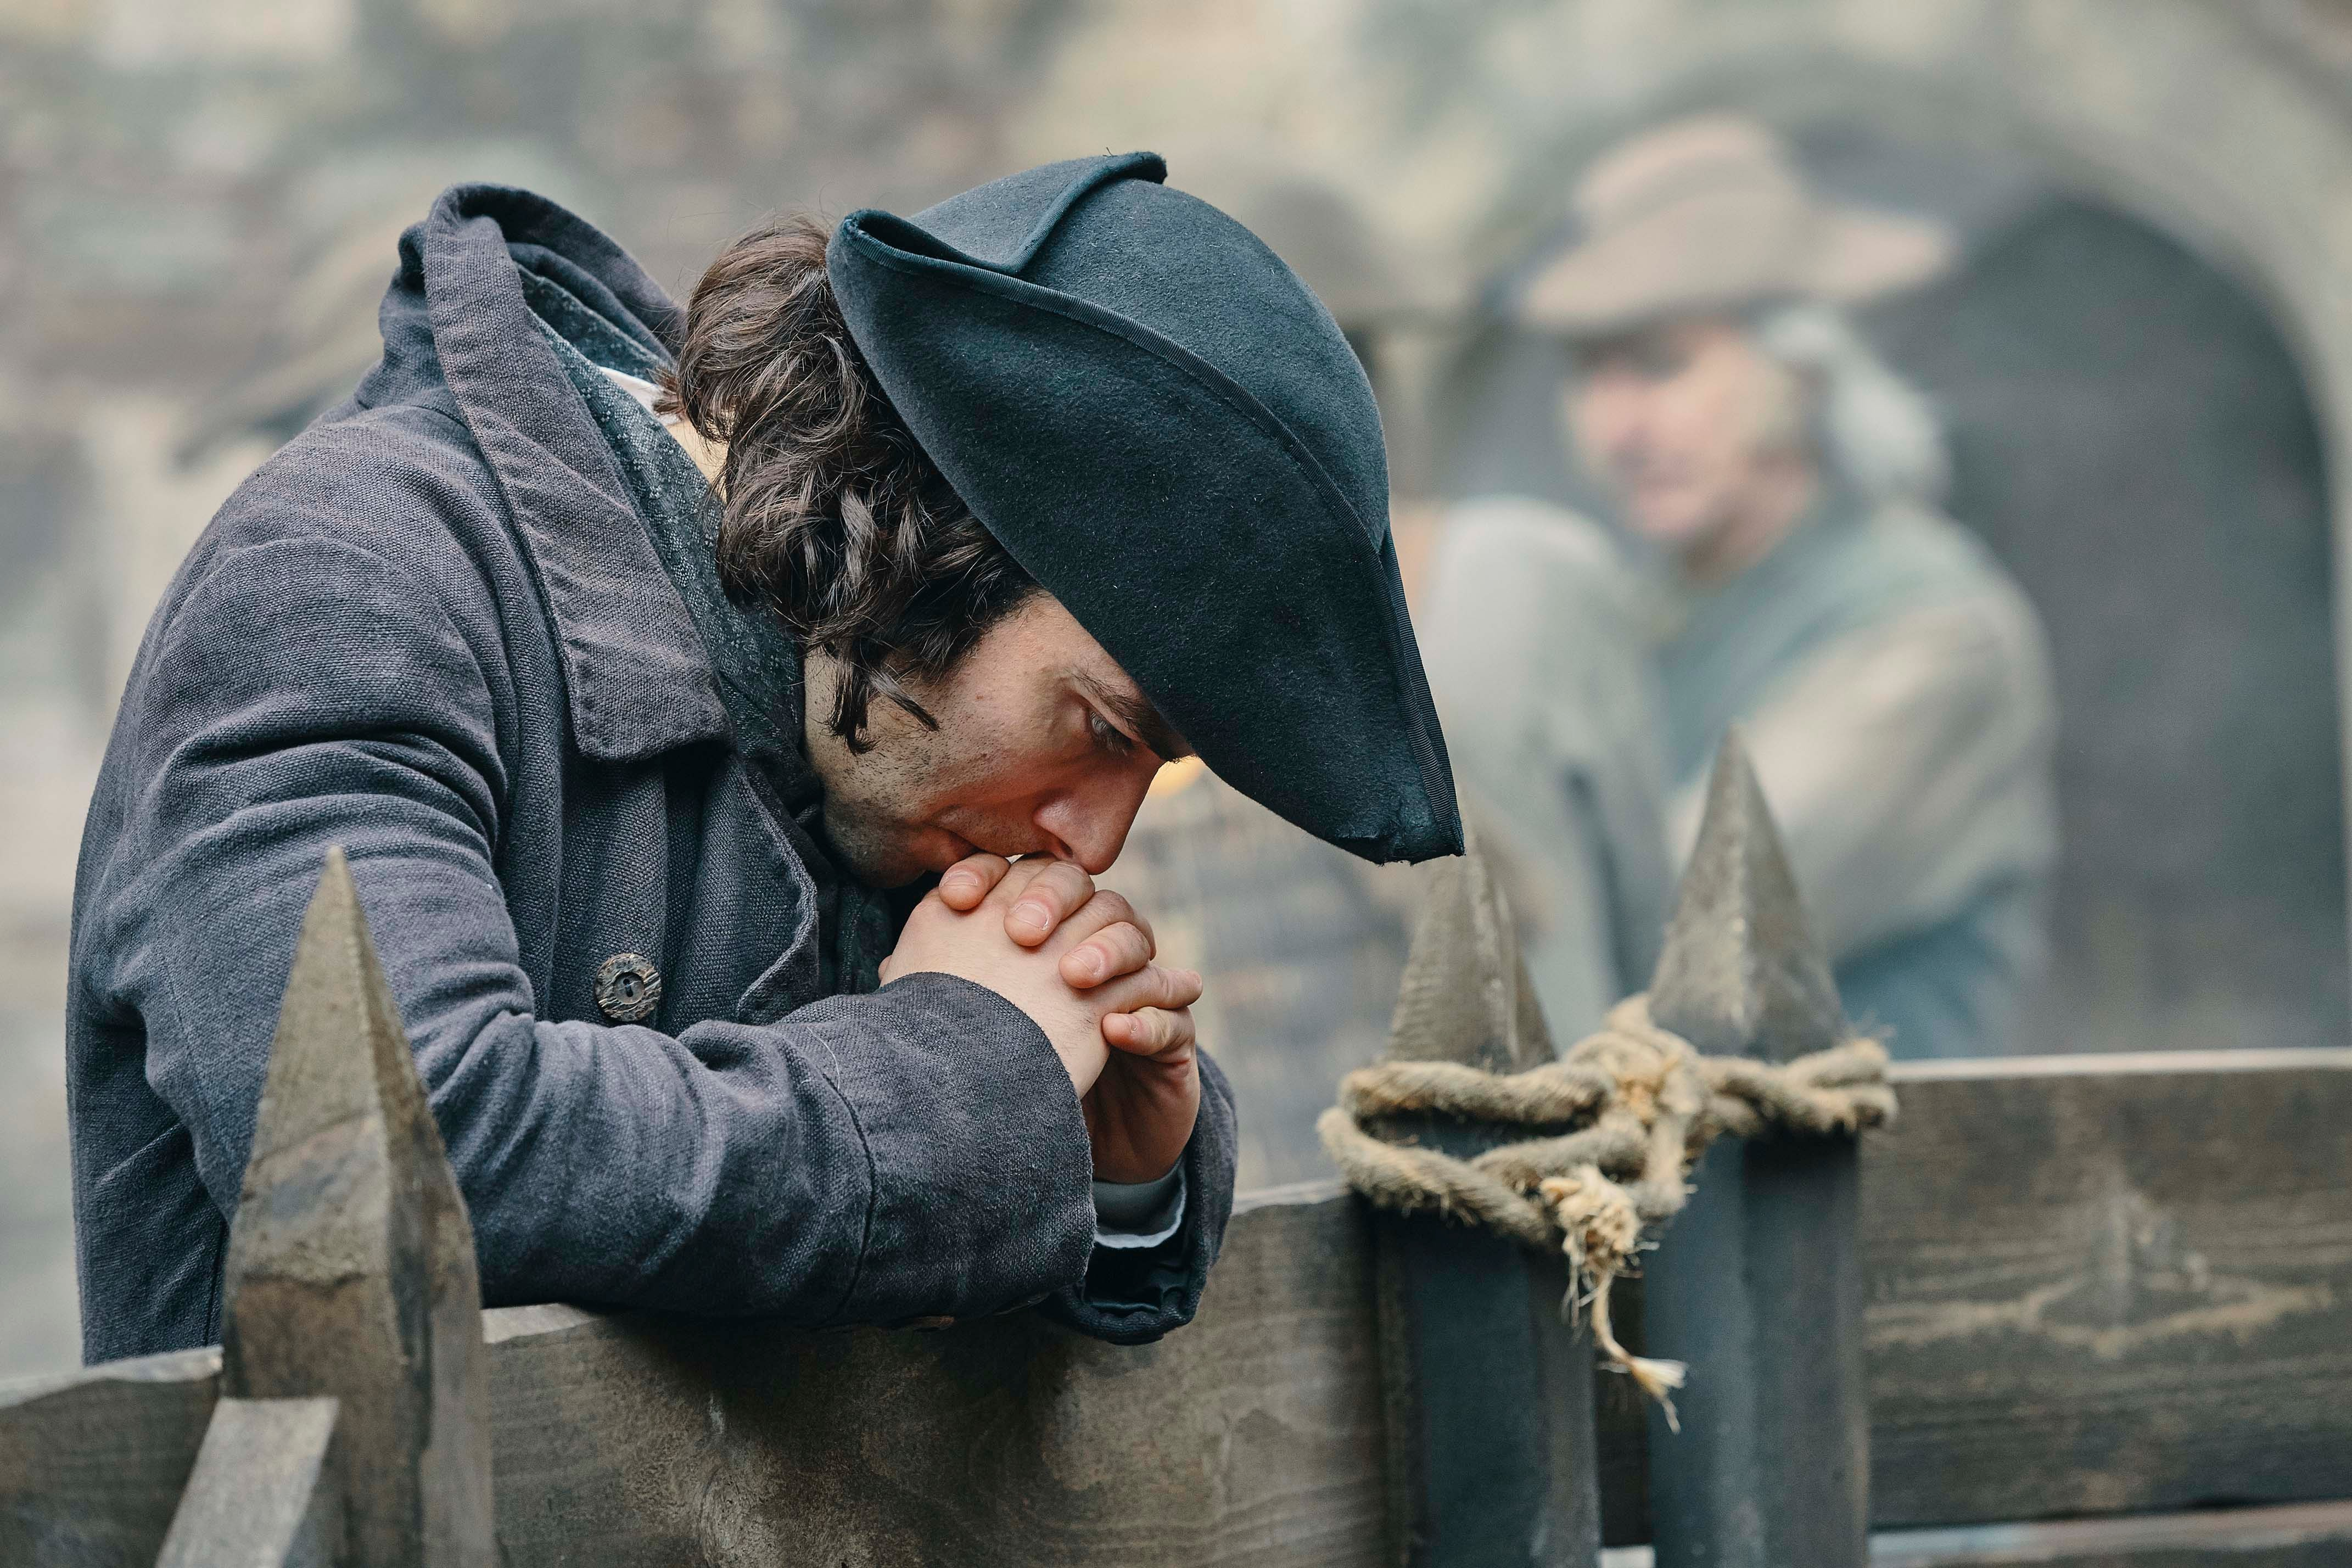 WARNING: Embargoed for publication until 00:00:01 on 05/06/2018 - Programme Name: Poldark - Series 4 - TX: n/a - Episode: Poldark S4 - EP1 (No. 1) - Picture Shows: ***EMBARGOED TILL 5TH JUNE 2018*** Ross Poldark (AIDAN TURNER) - (C) Mammoth Screen  - Photographer: Mike Hogan